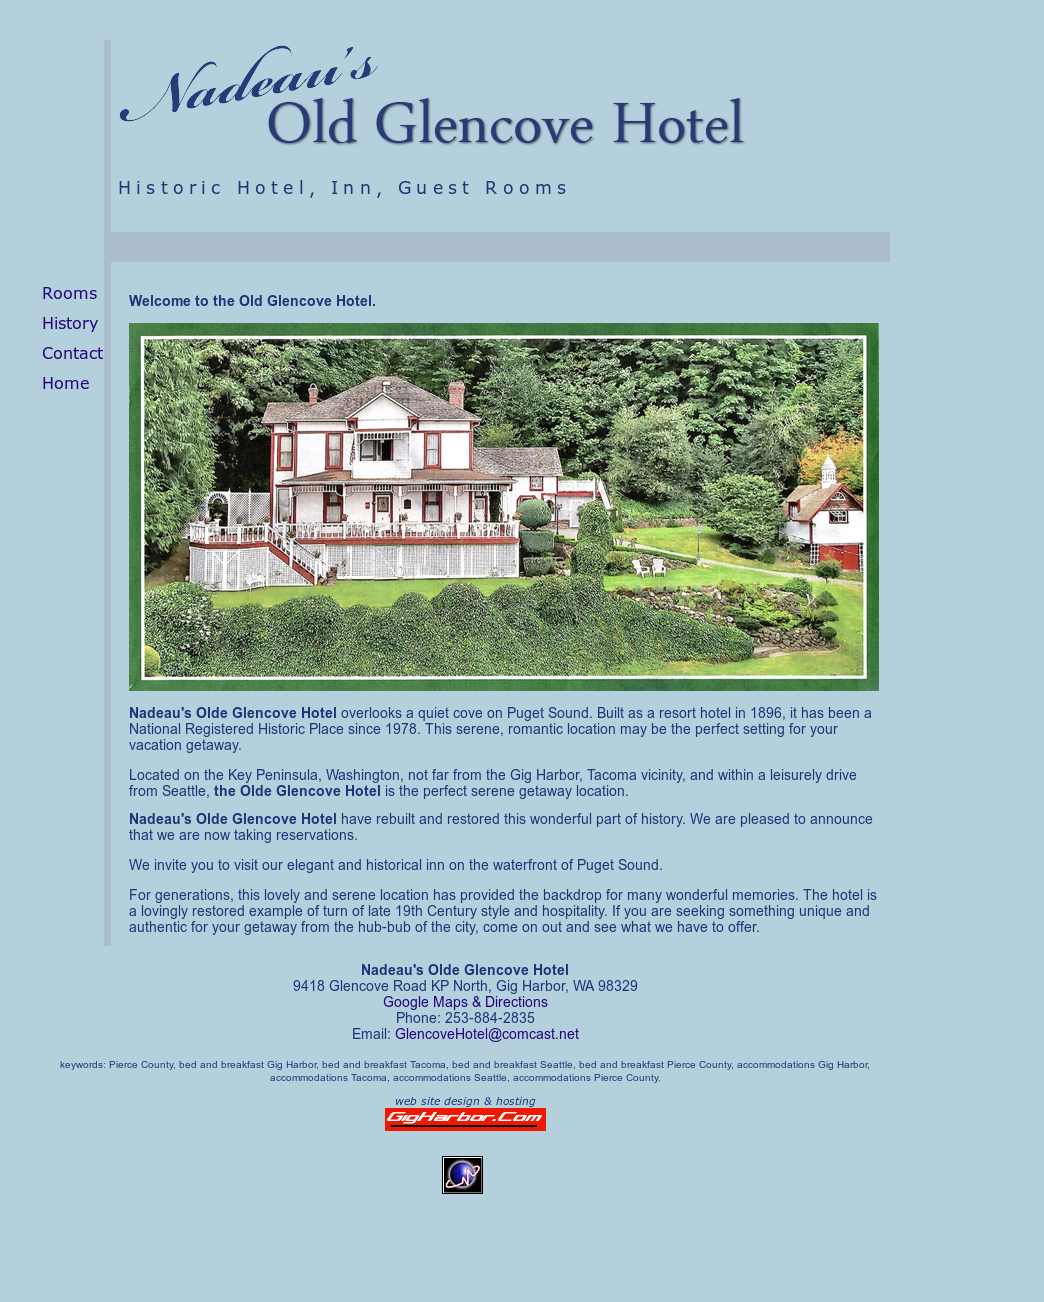 Old Glencove Hotel Competitors, Revenue and Employees